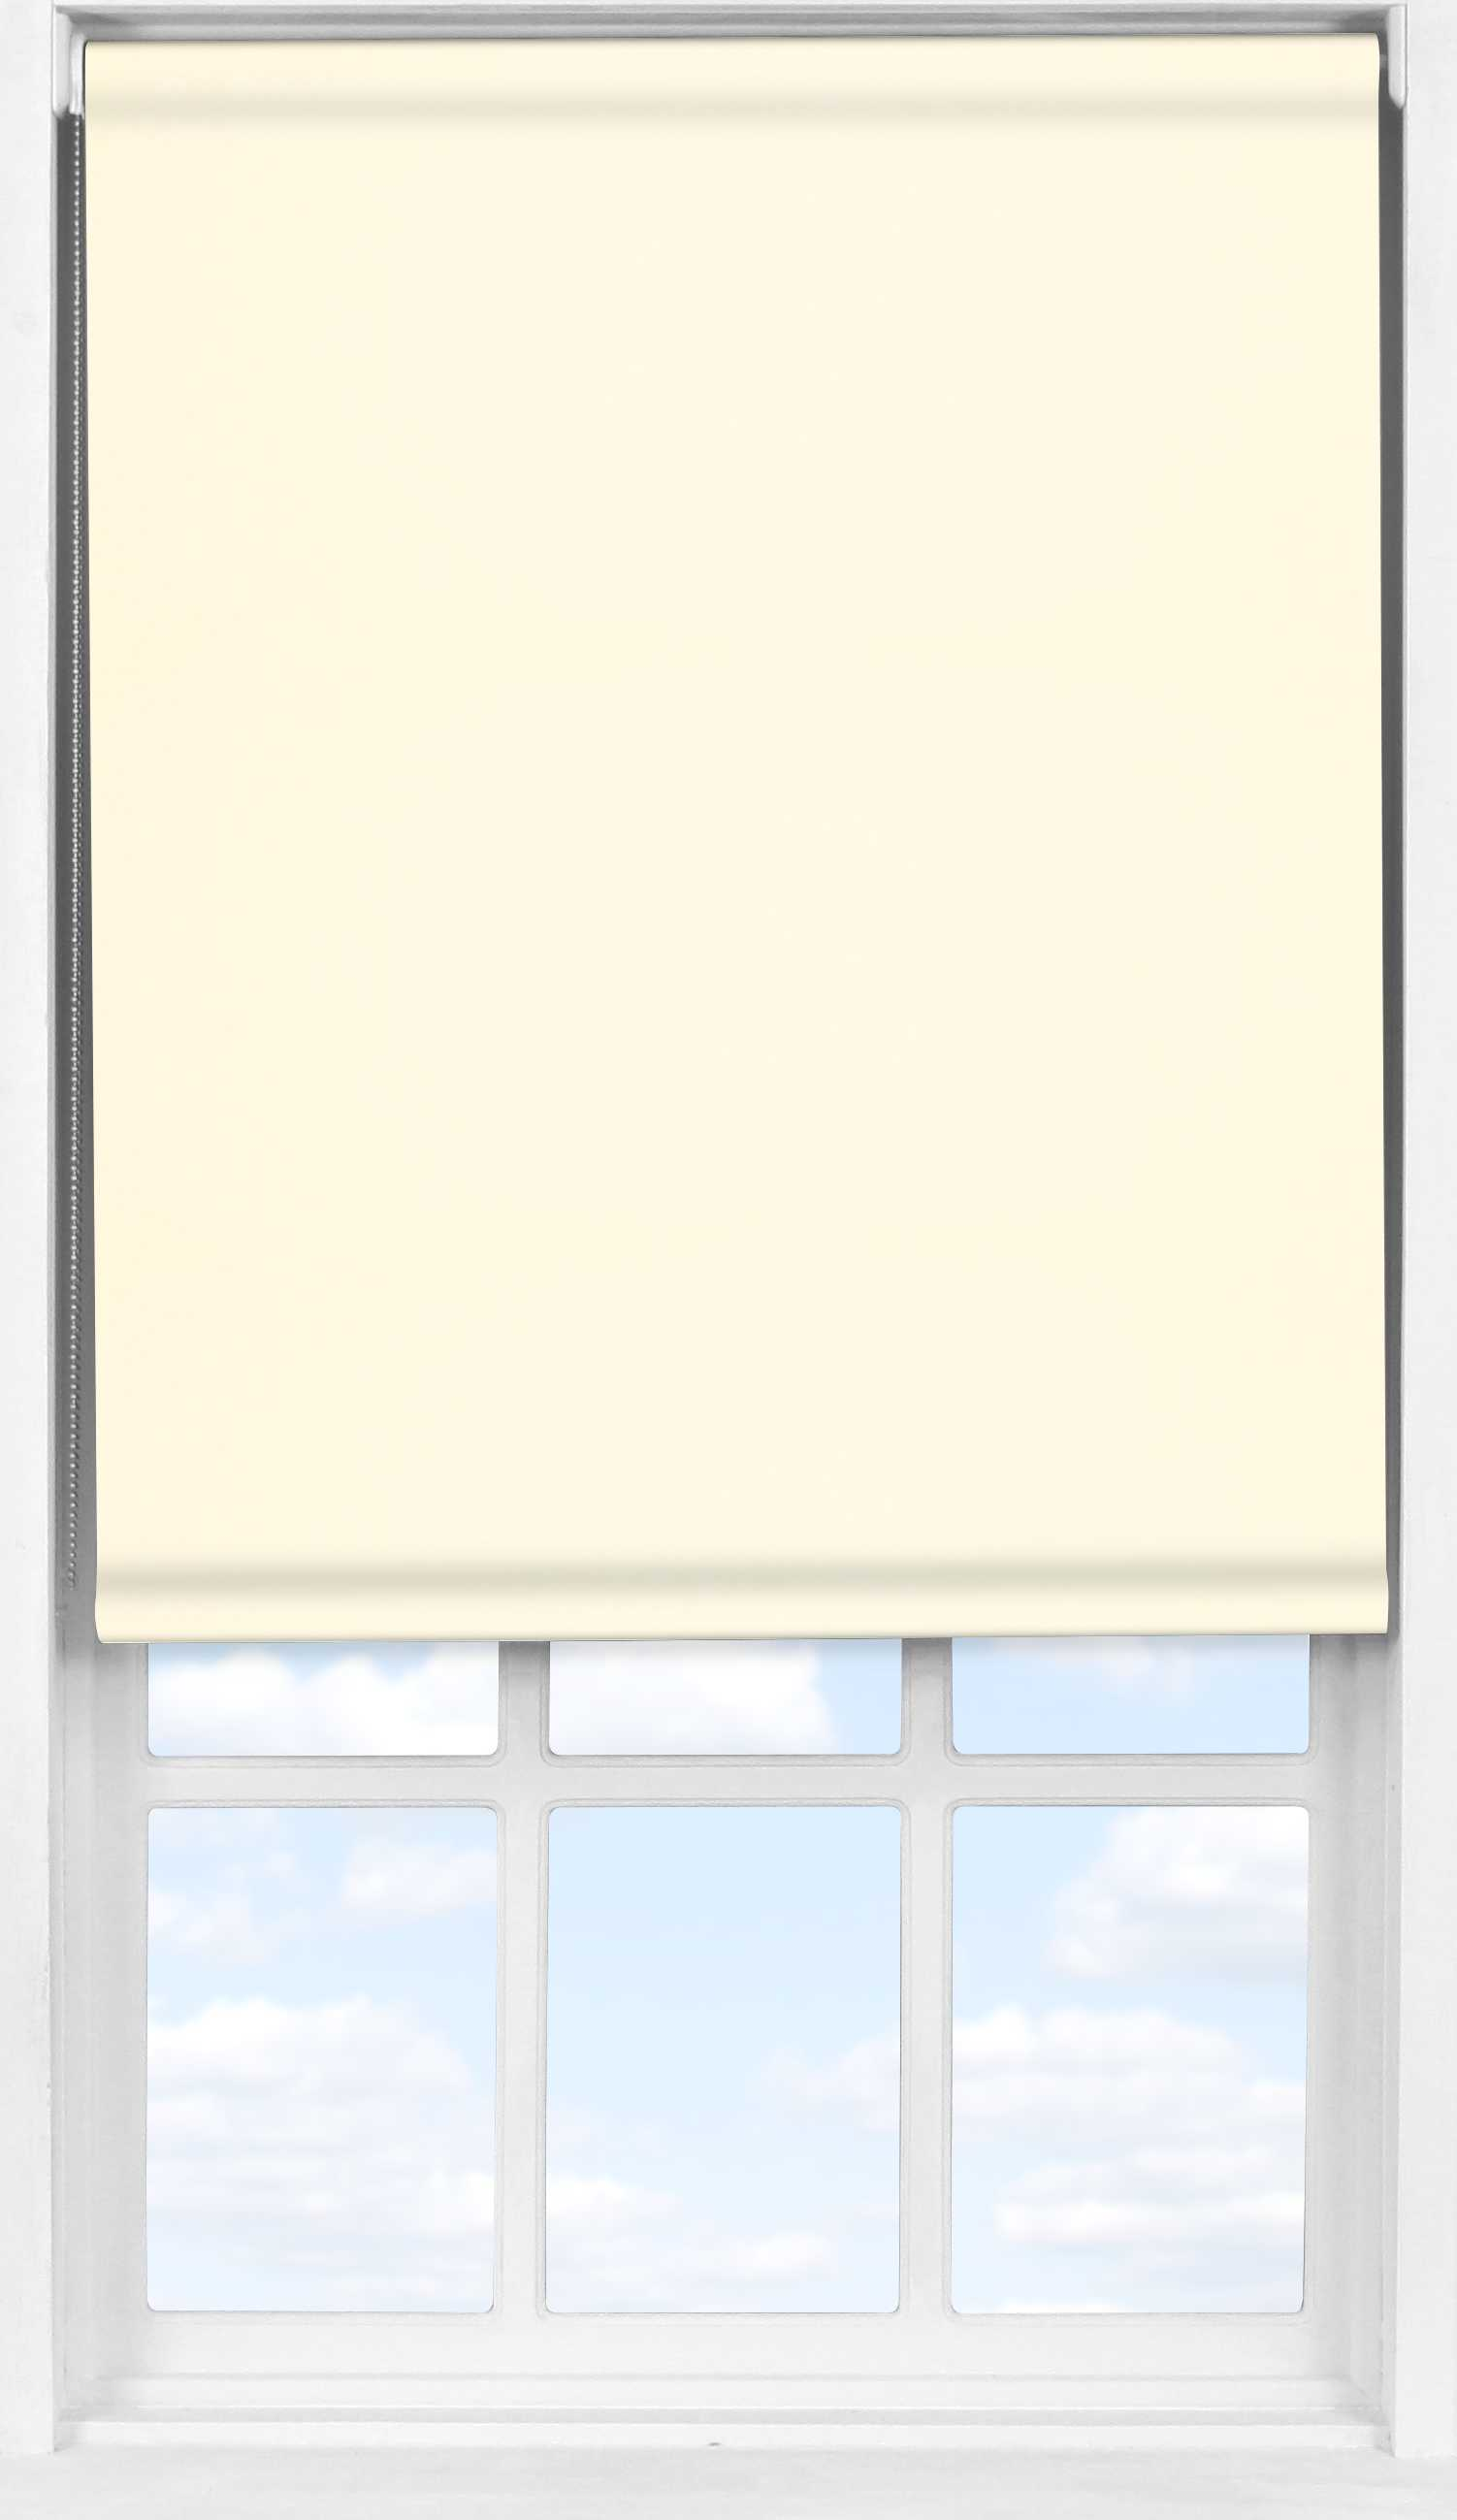 Easifit Roller Blind in Delicate Cream Translucent